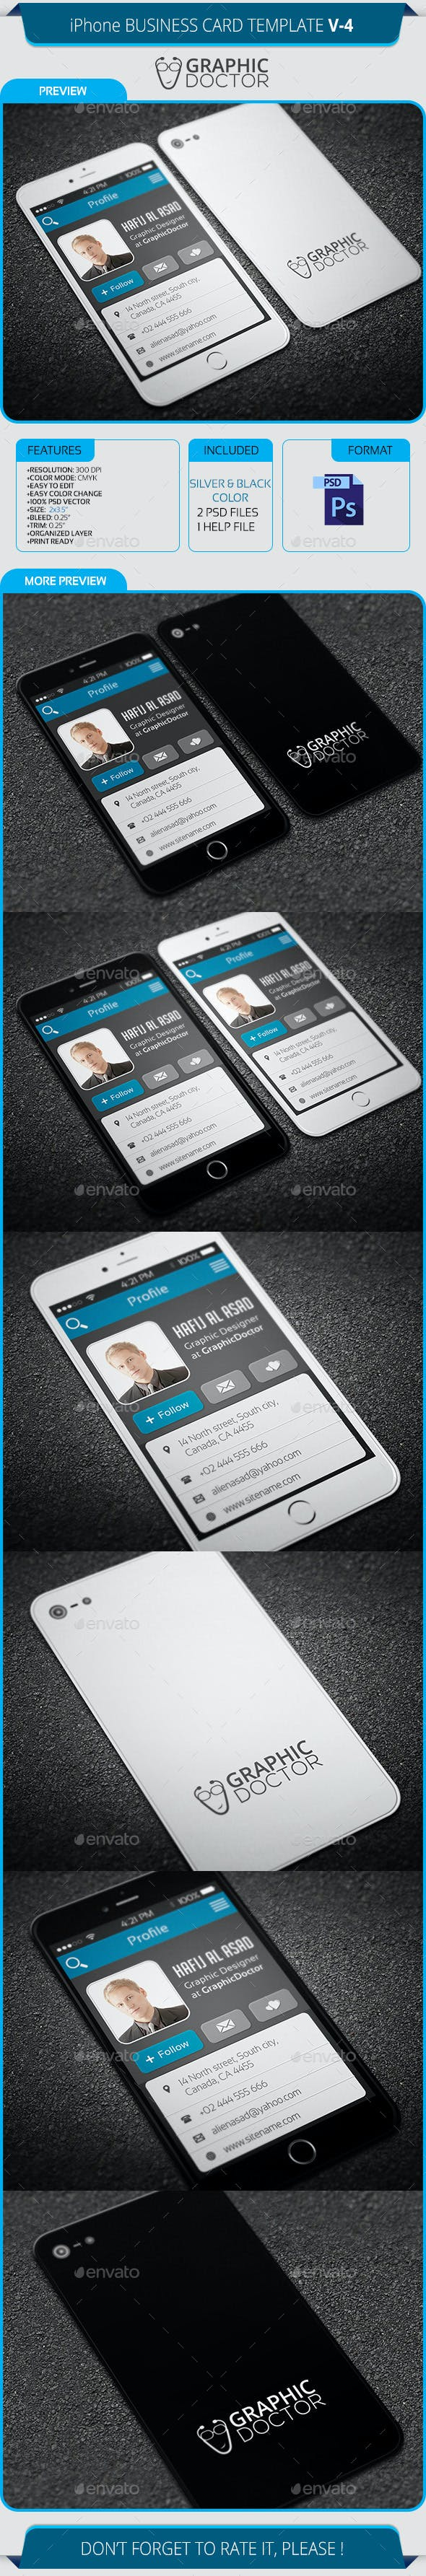 IPhone Business Card Template V 4